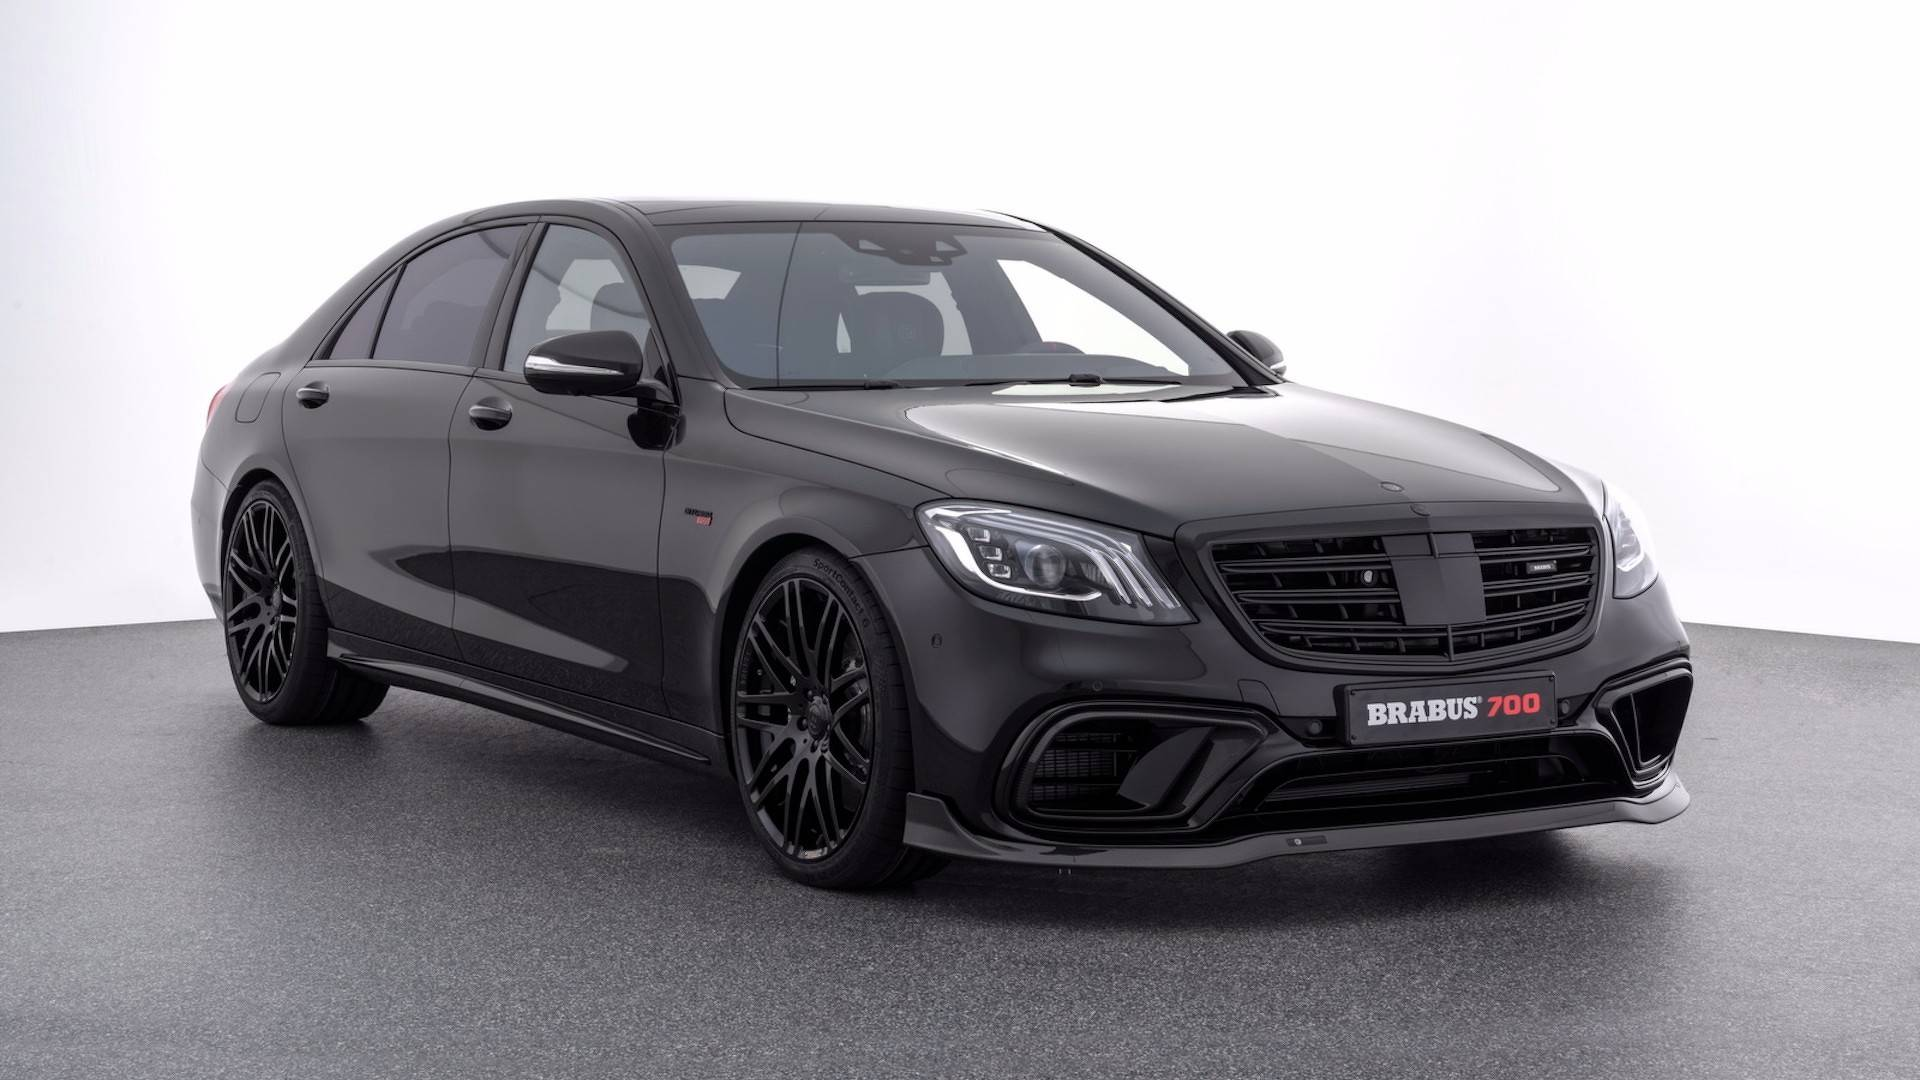 Brabus Mercedes AMG S63 Maybach S650 Dialed Up To 700 And 900 HP